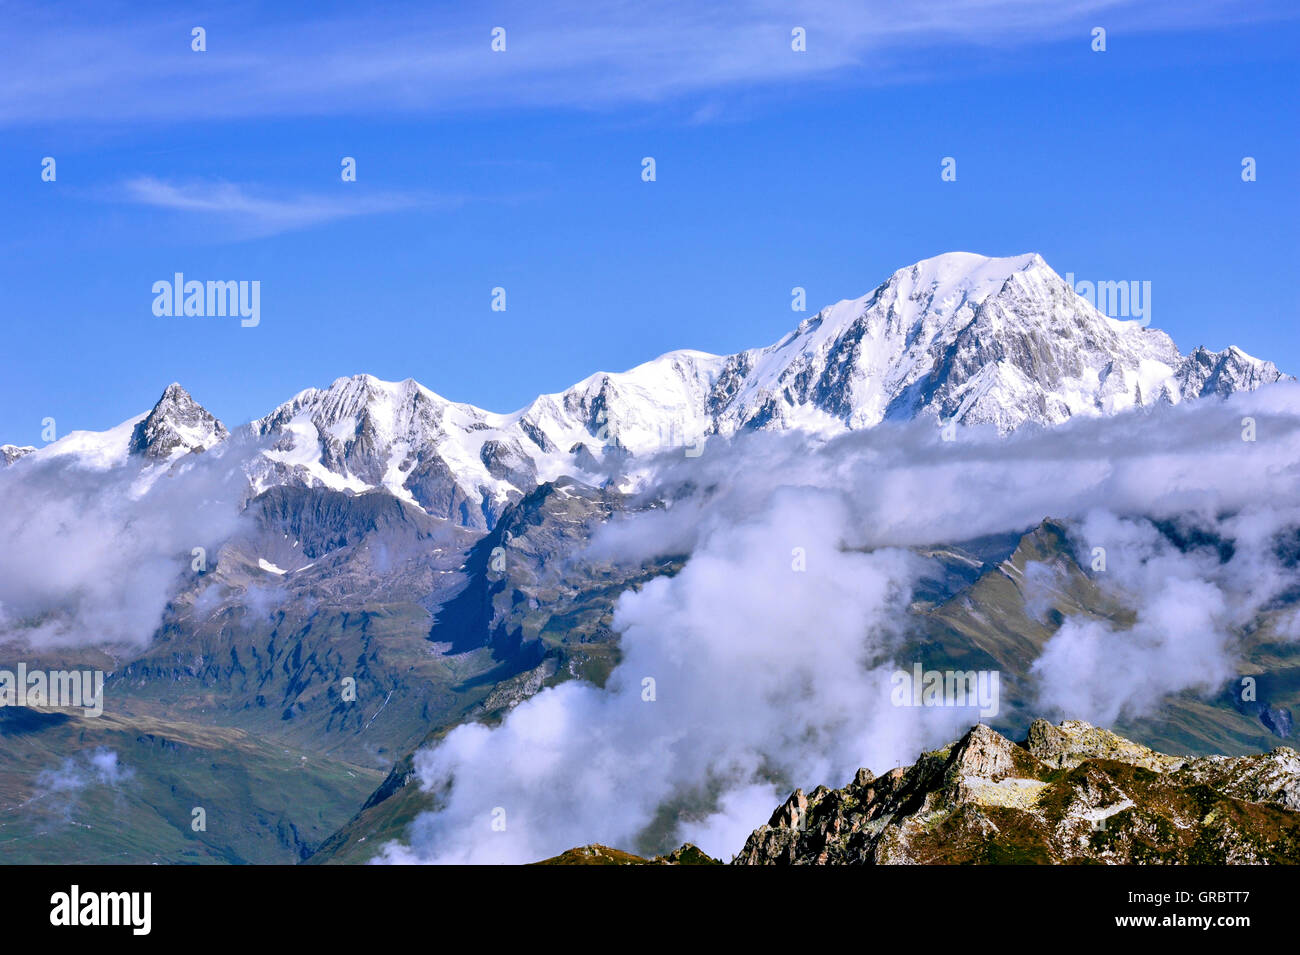 Mountain Mont Blanc, View Of Aiguille Grive, French Alps, France - Stock Image